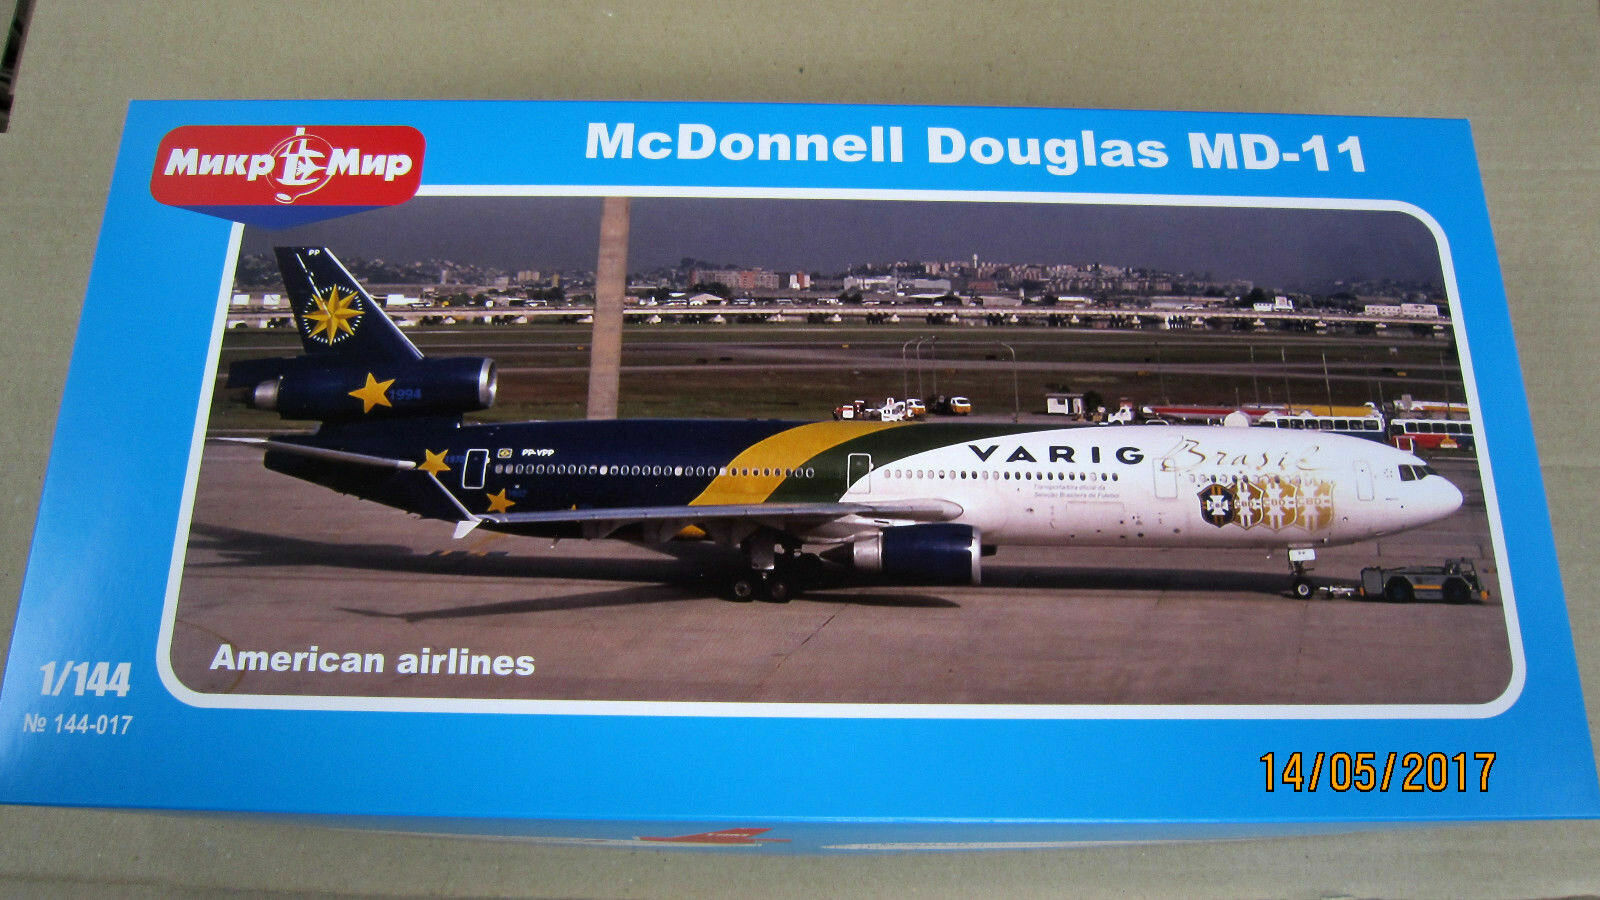 Mikro-mir 144-017 - 1 144 McDonnell Douglas MD-11 Airlines of America, model kit